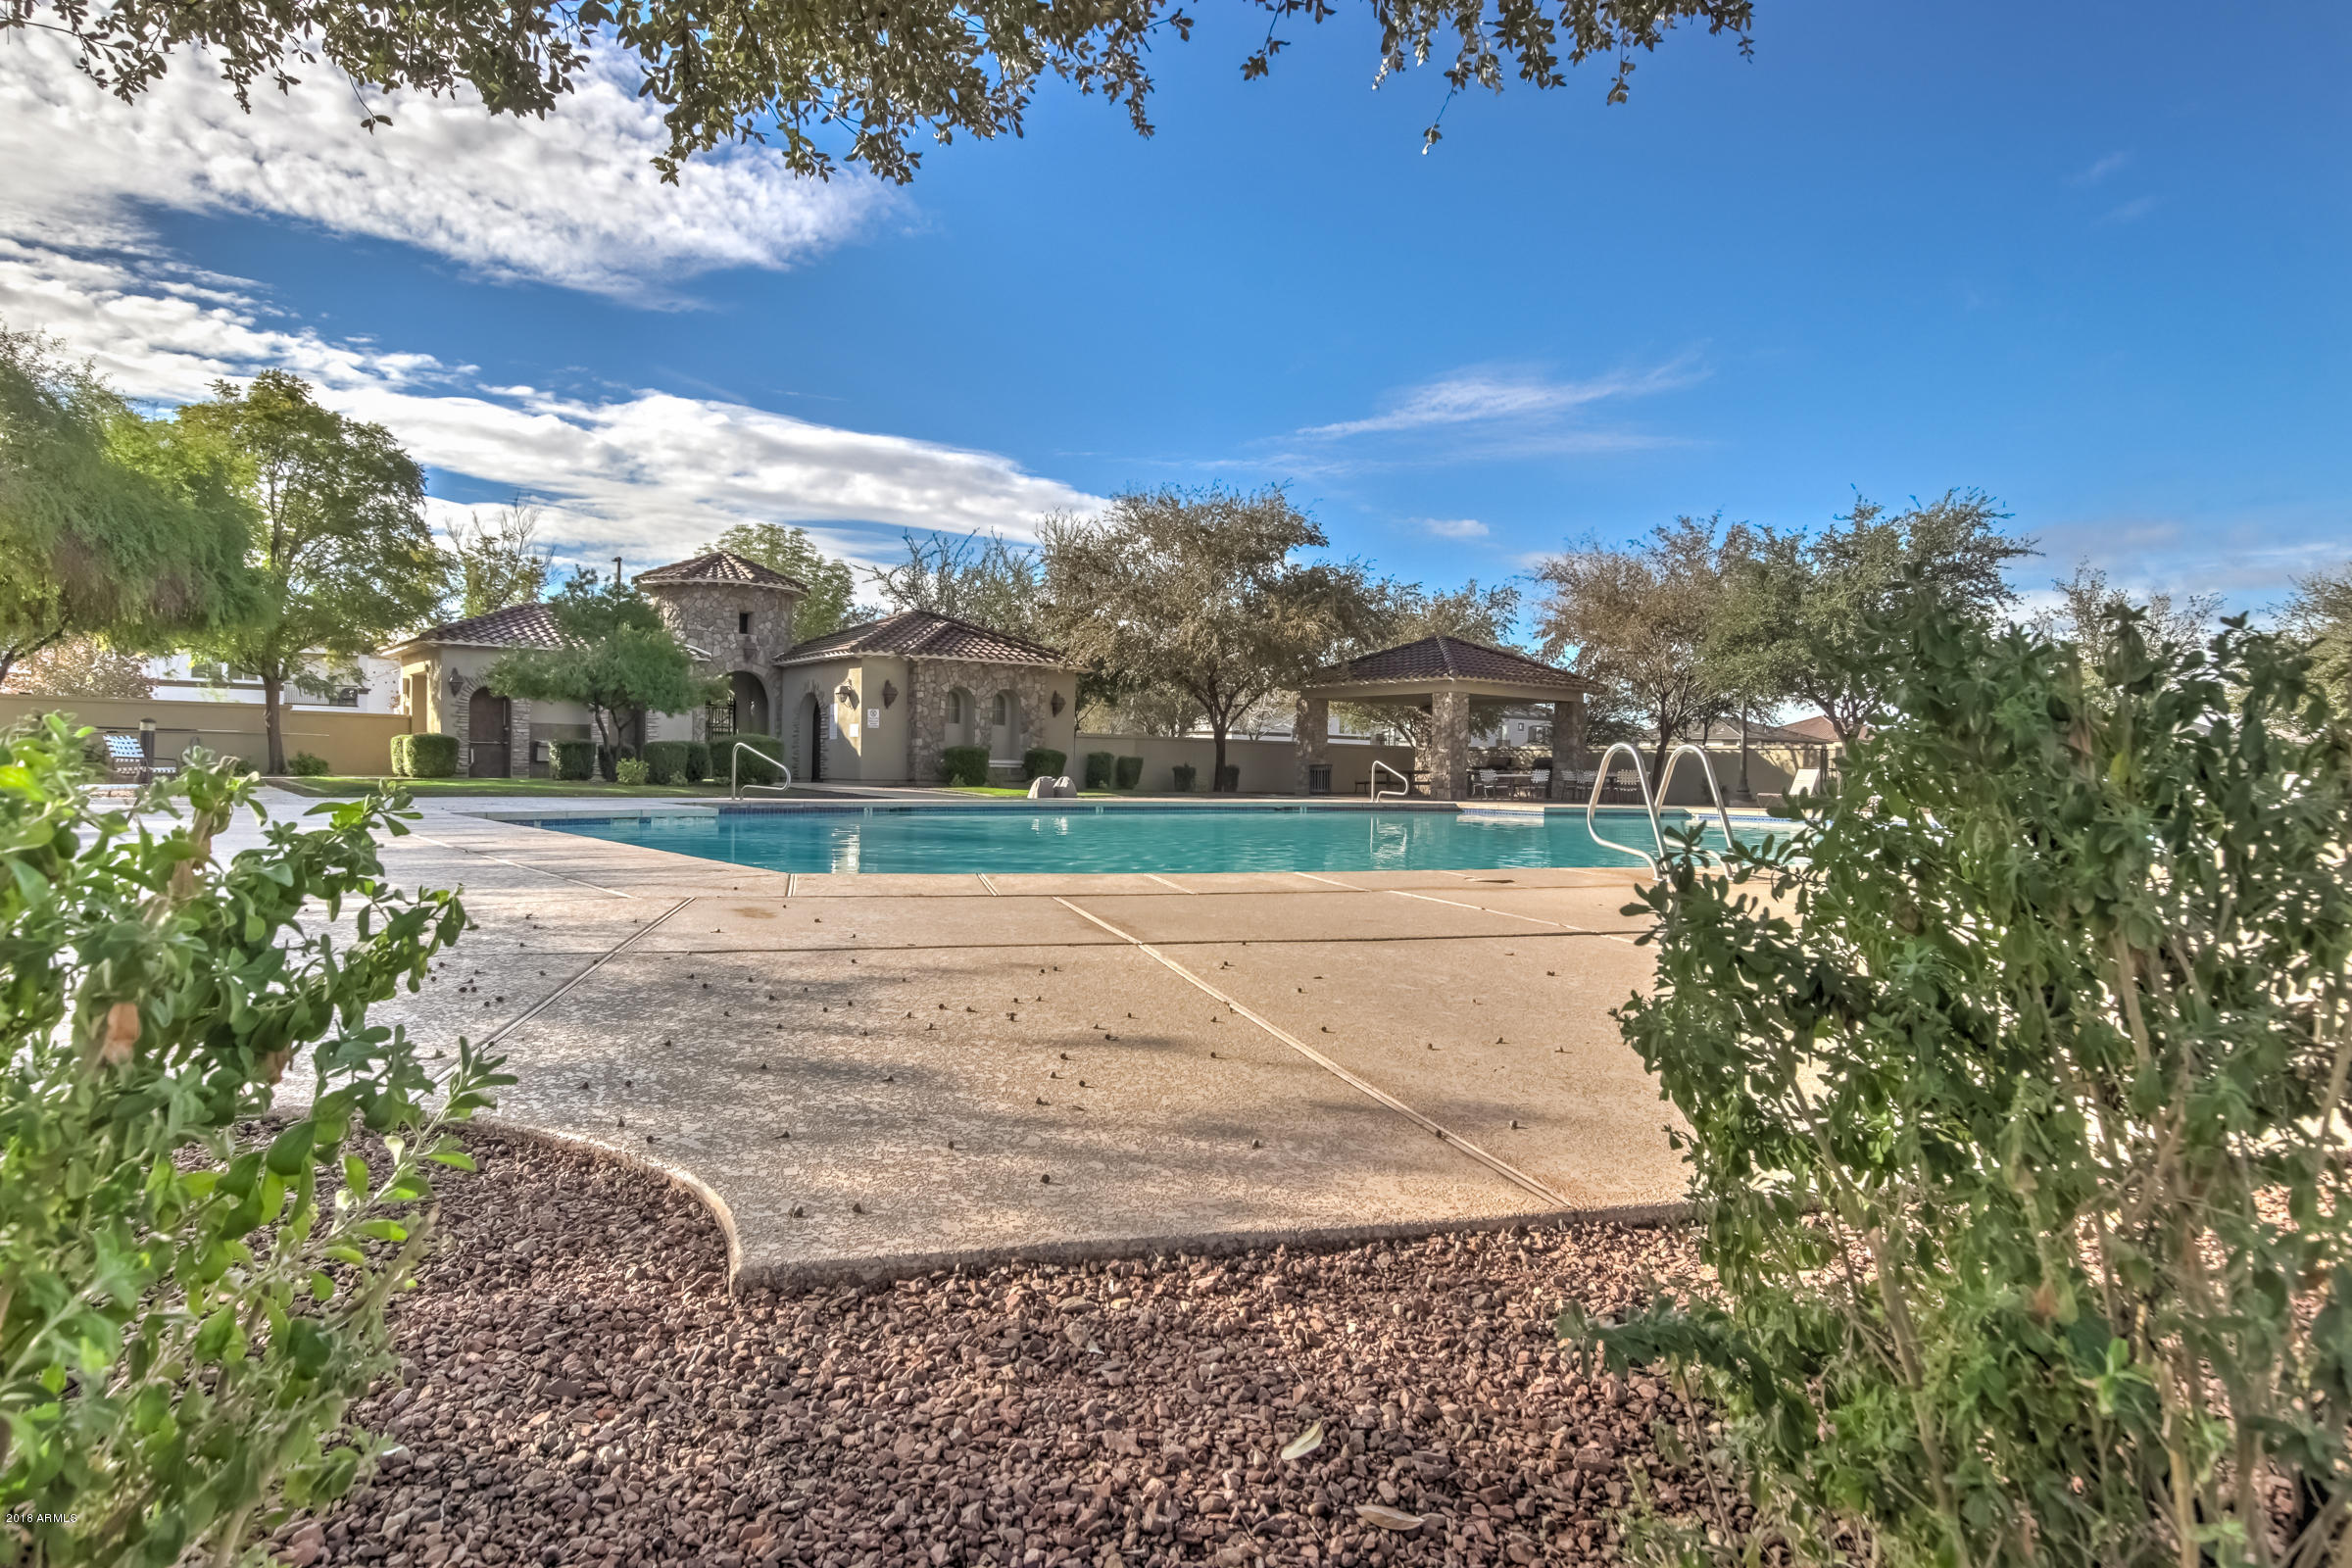 MLS 5855474 1885 E FRYE Road Unit 102, Gilbert, AZ 85295 Gilbert AZ Condo or Townhome